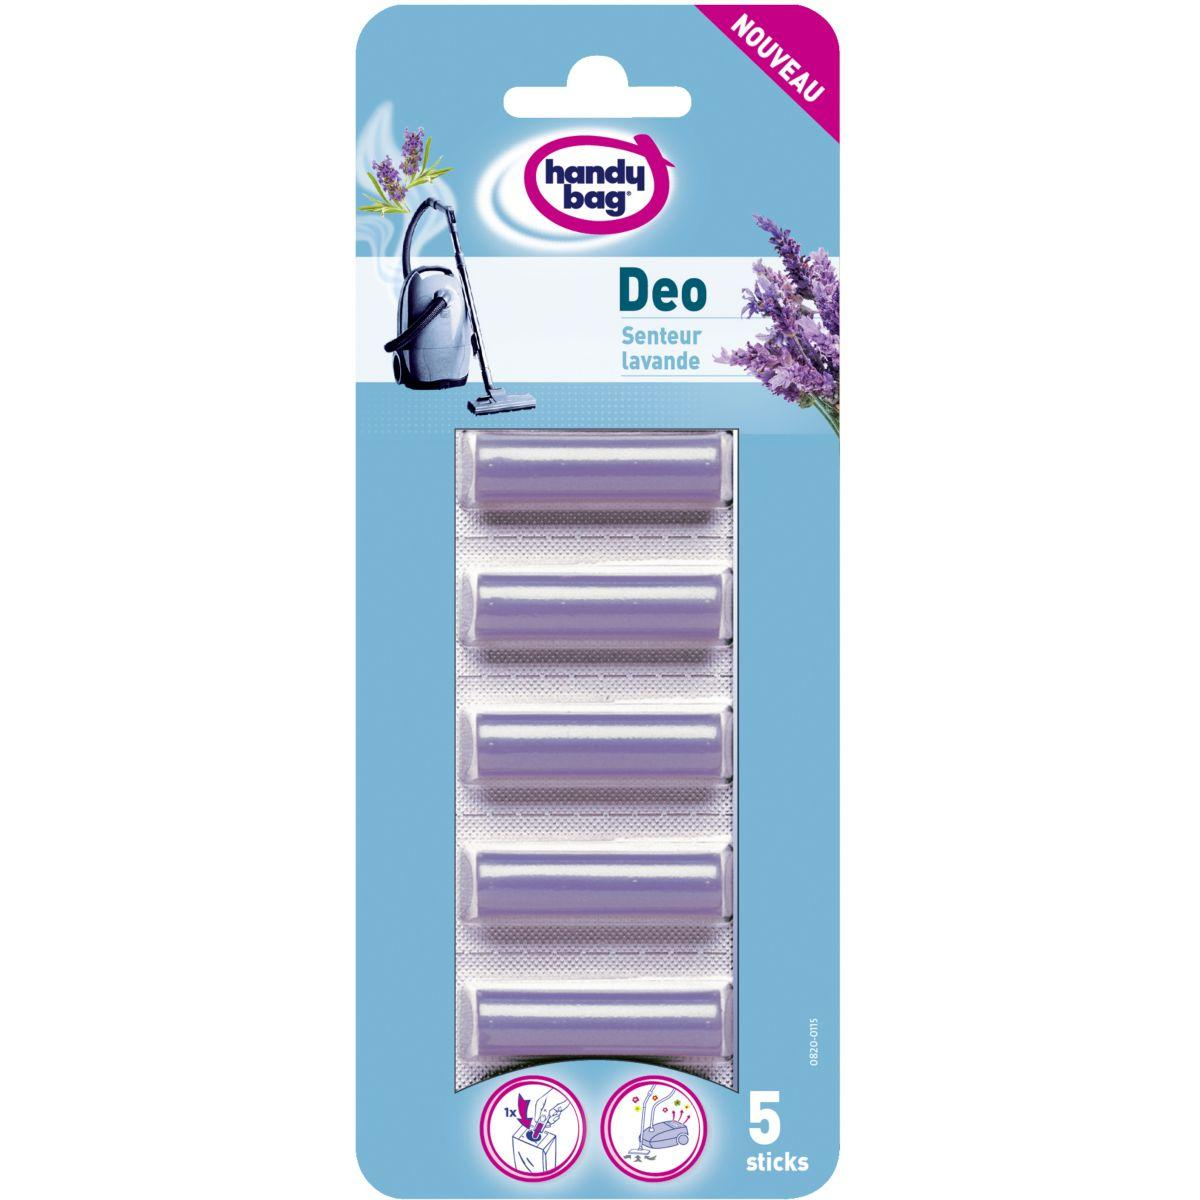 Parfum aspirateur handy bag deo sticks lavande *5 - 7% de remi...